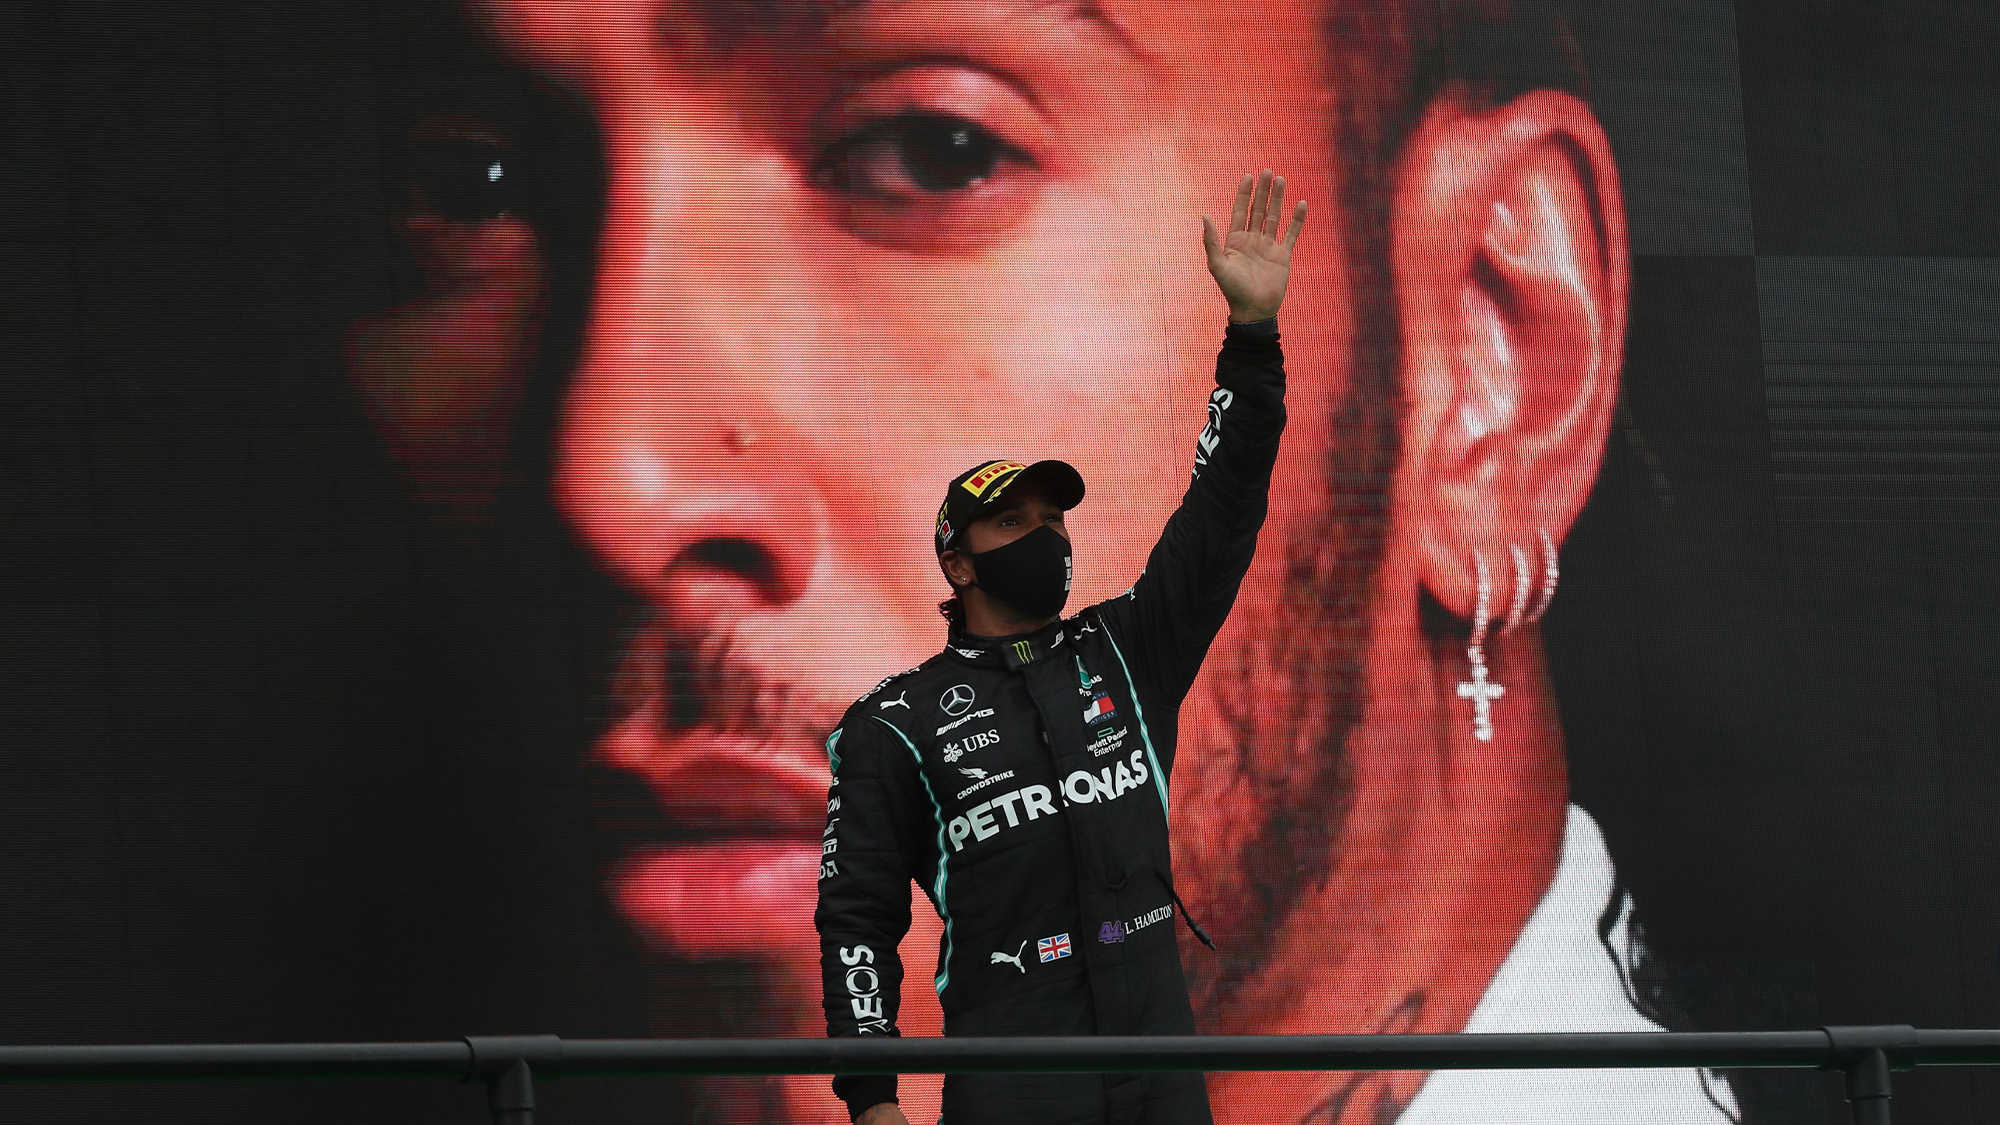 Lewis Hamilton raises his arms in front of a giant picture of himself after winning a record 92nd F1 race at the 2020 Portuguese Grand prix